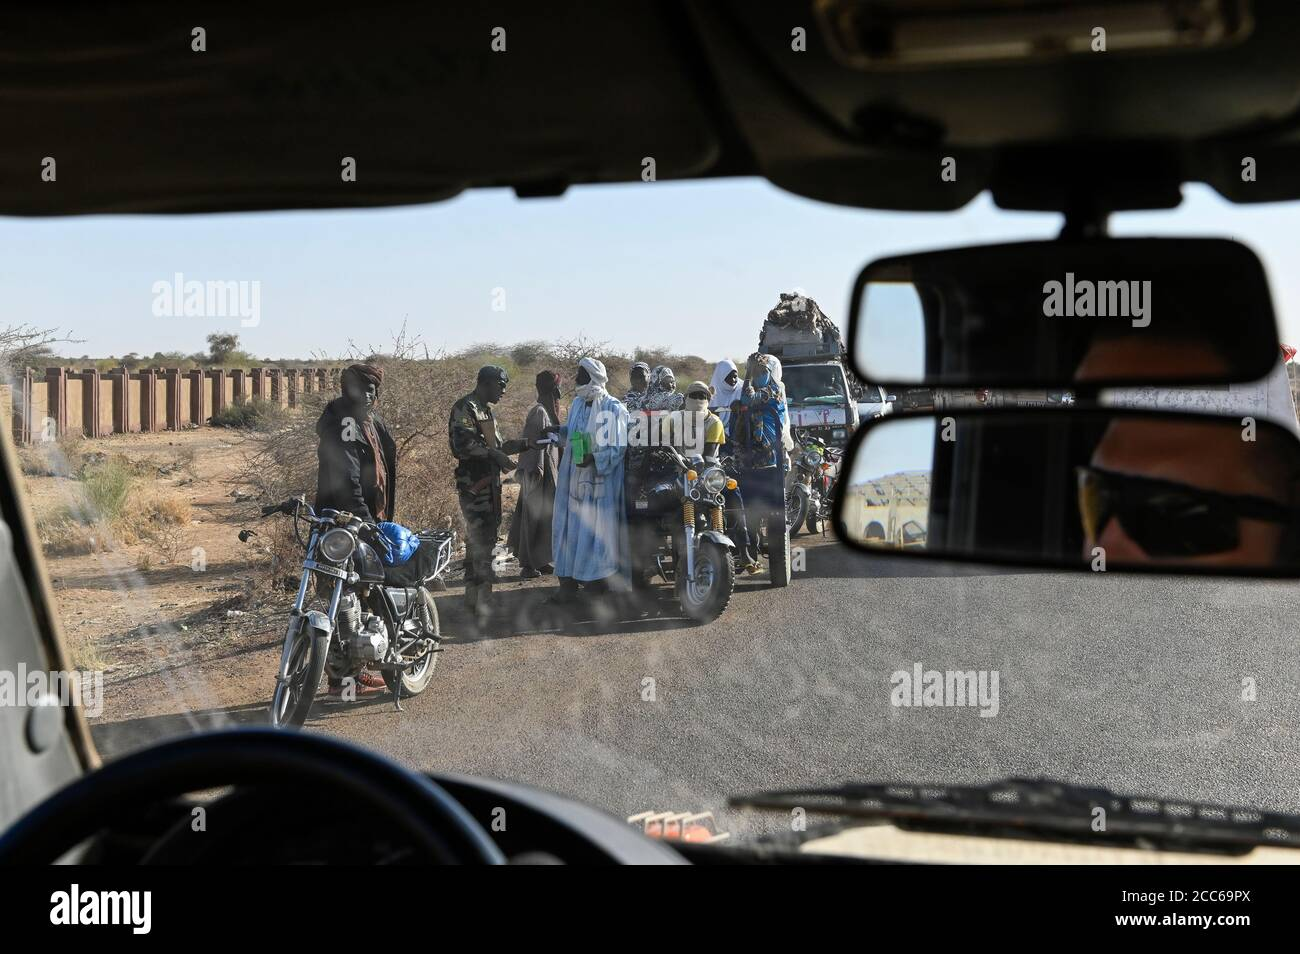 MALI, Gao, Minusma UN peace keeping mission, Camp Castor, german army Bundeswehr, patrol , passing a checkpost of FAMa malian armed forces Stock Photo